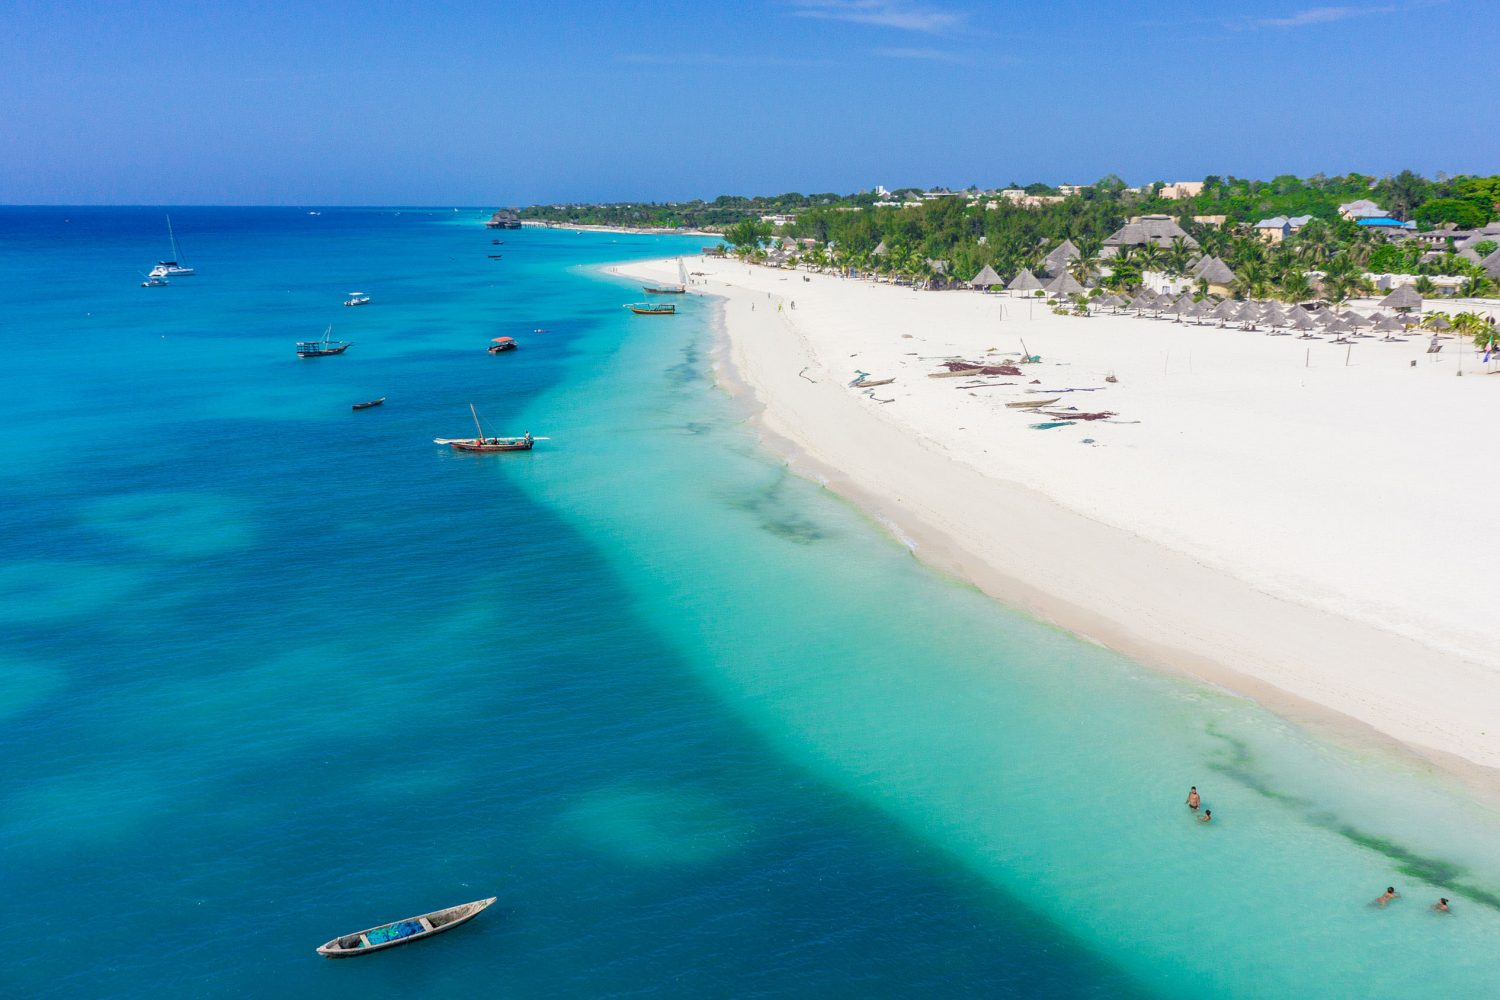 Kendwa beach area at the Northern party of Zanzibar